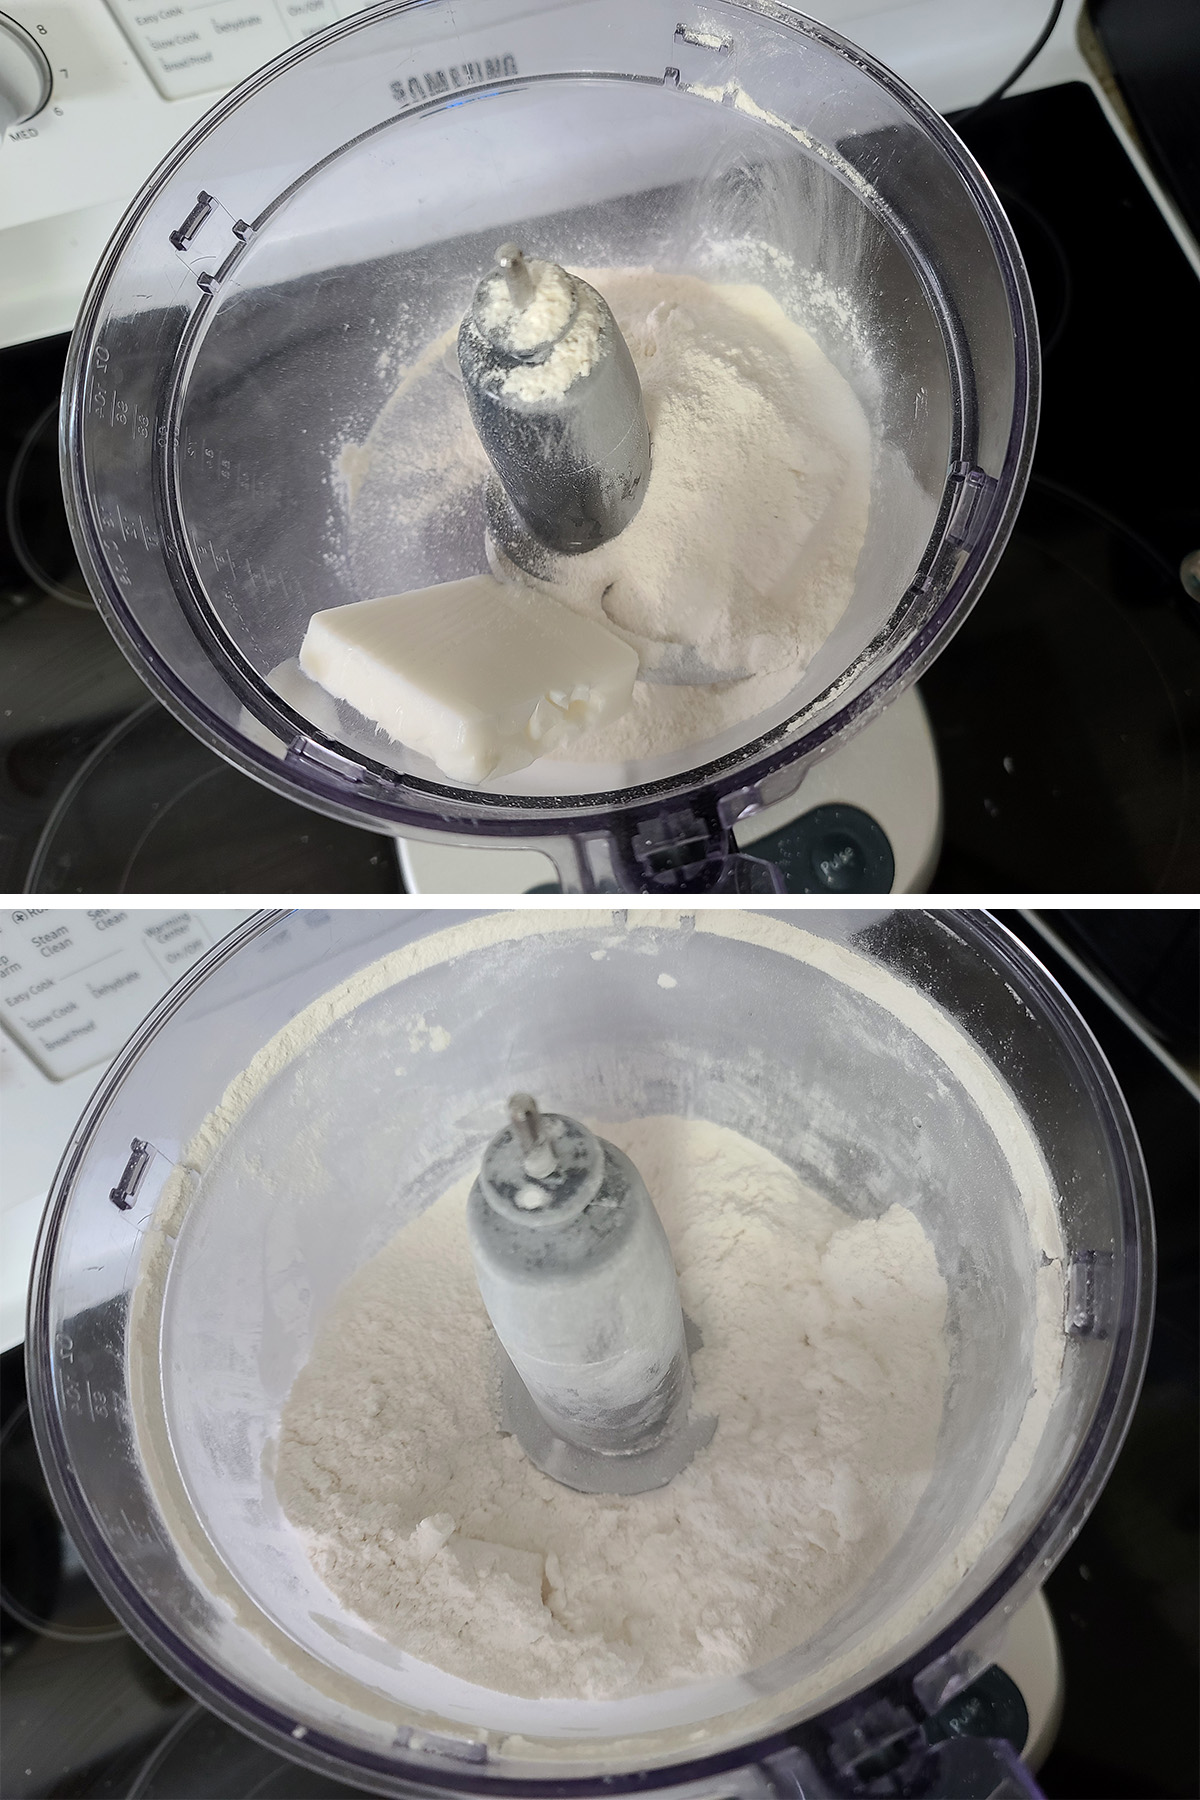 Lard is added to a food processor with cassava flour in it, then shown as a gravel-looking mixture.